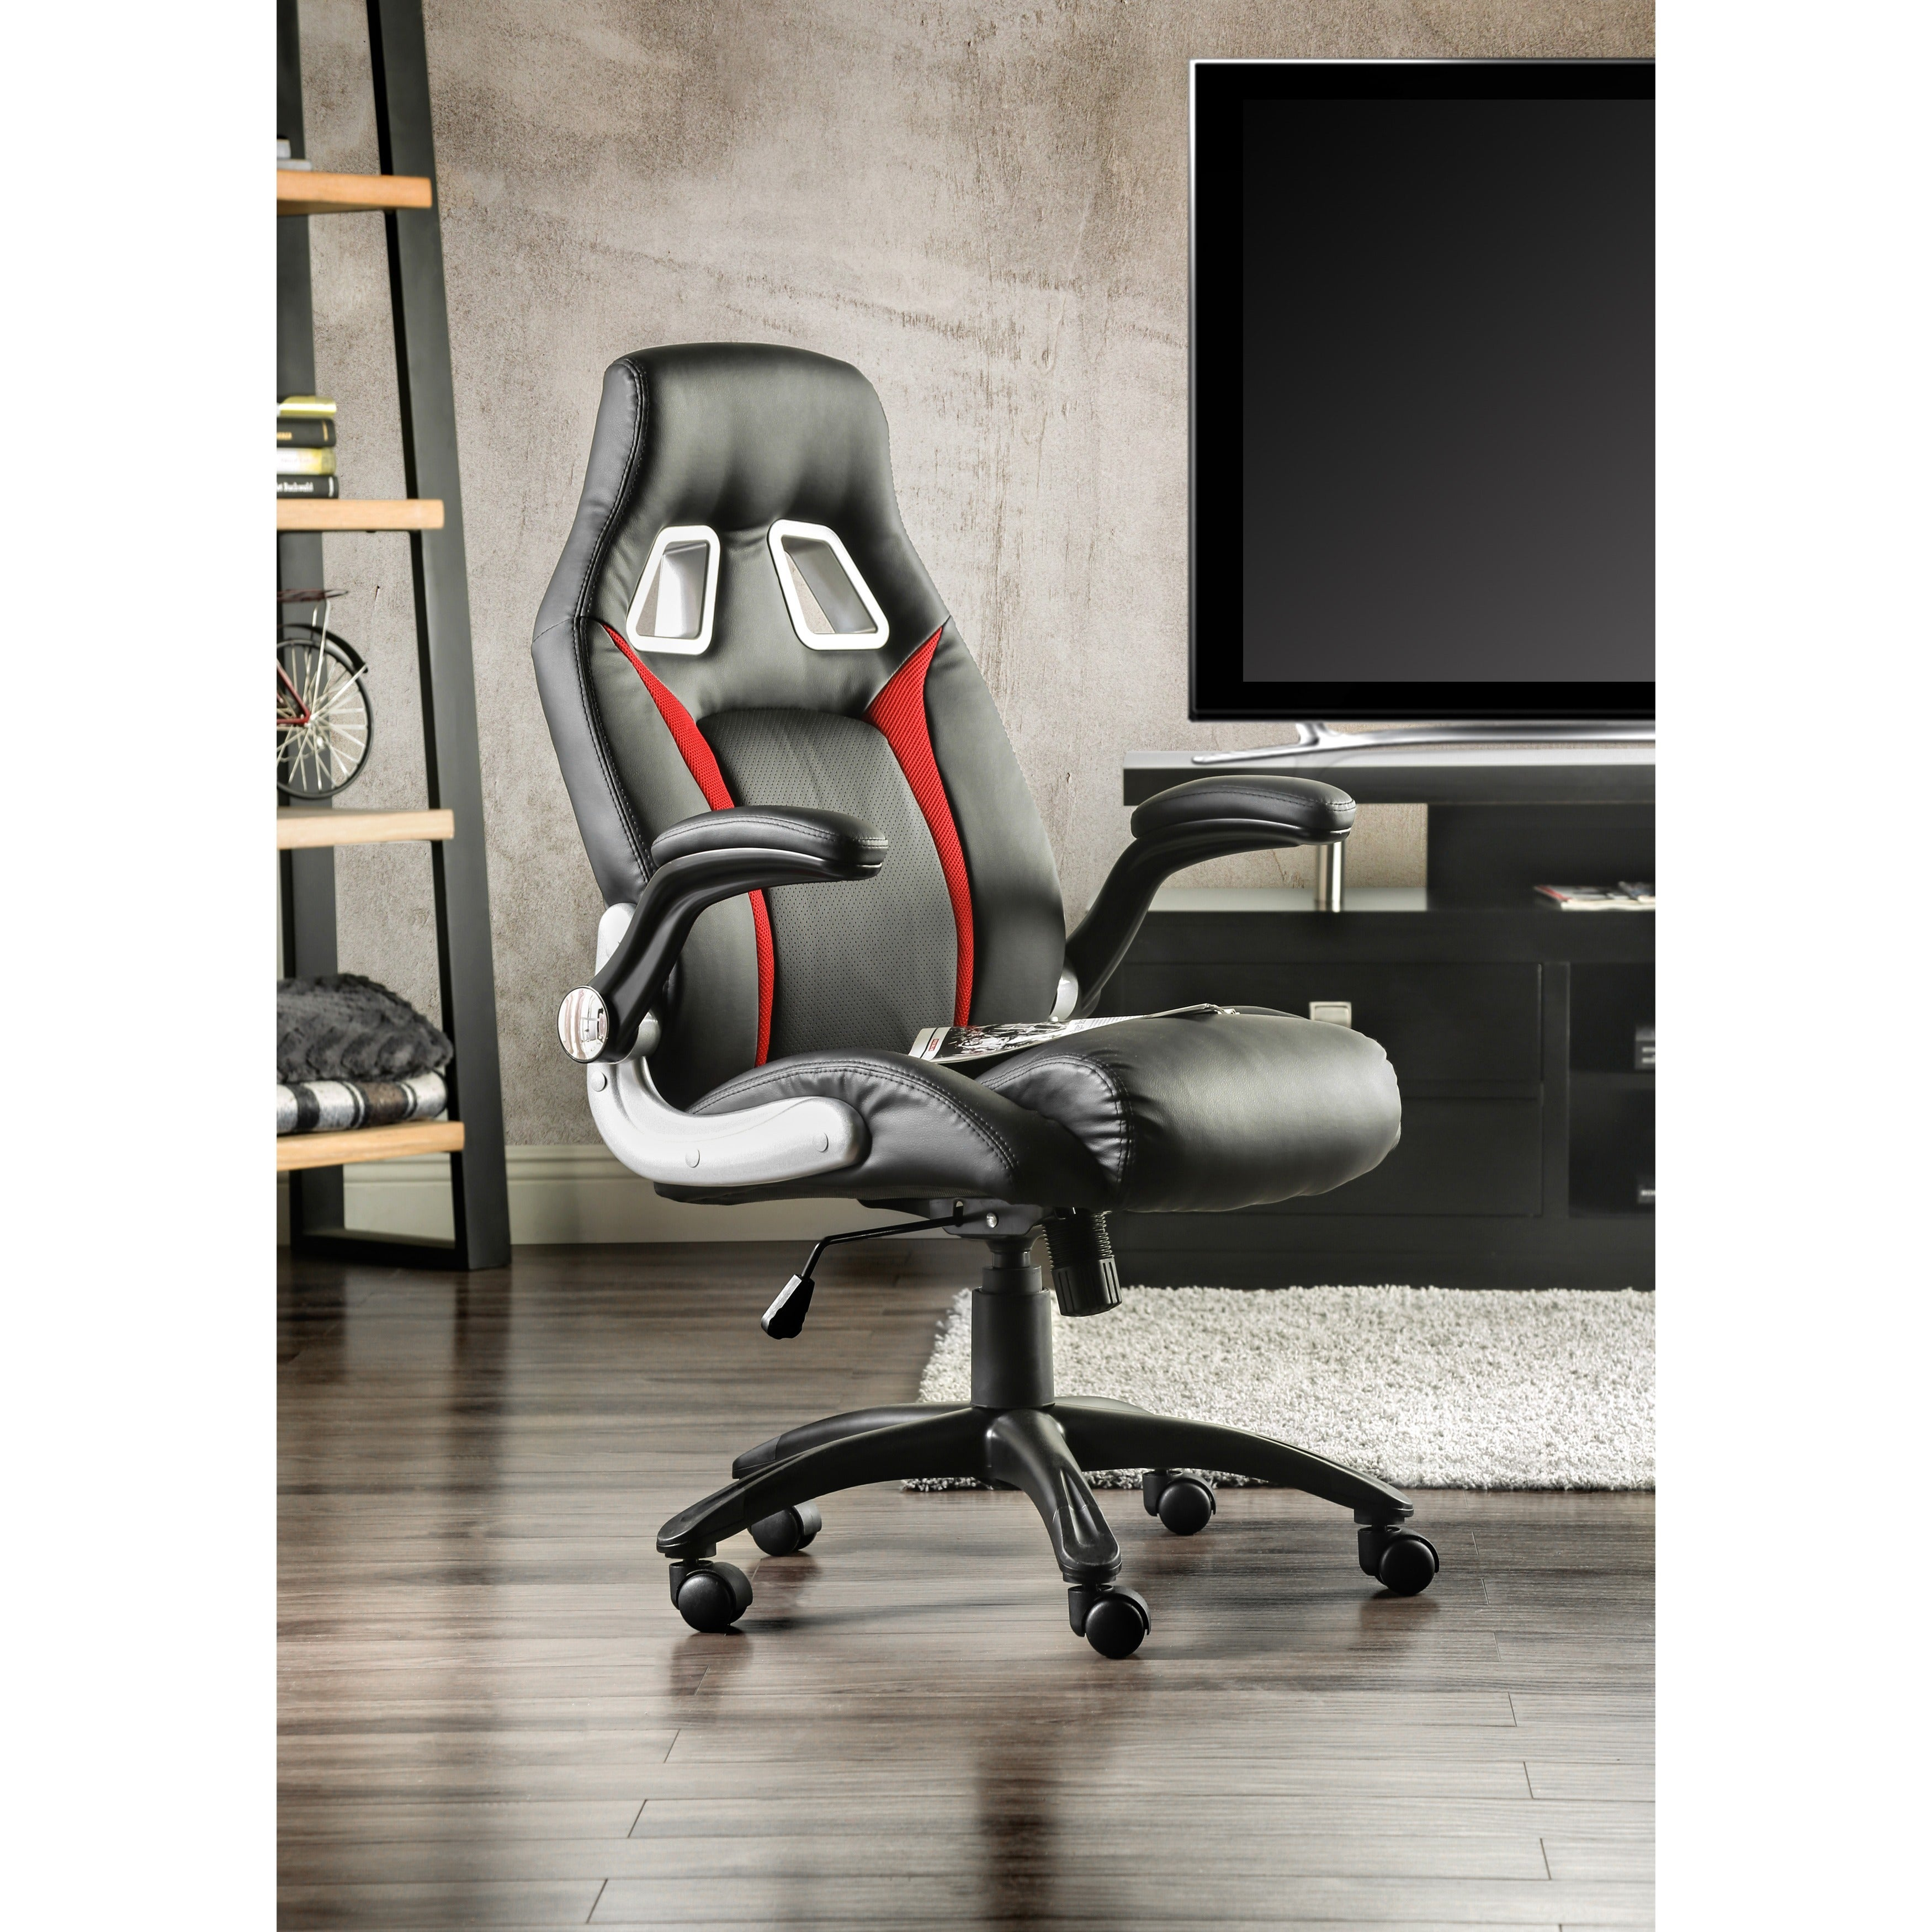 triigger expensive edition gc line black vt vertagear gam gaming ocuk chair series